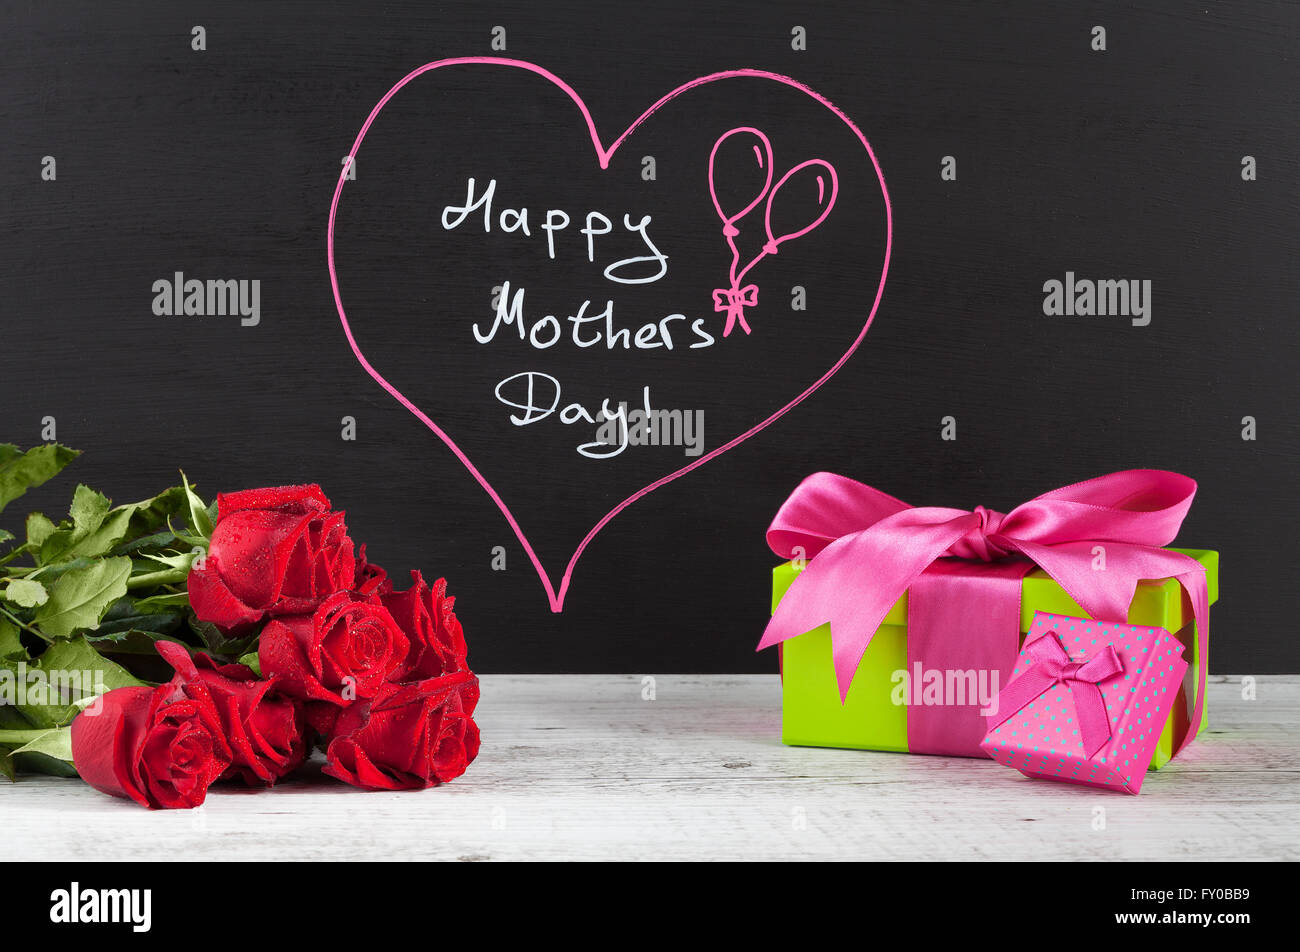 Happy Mother's day composition with red roses and pink gift boxes on white rustic wooden table. Stock Photo